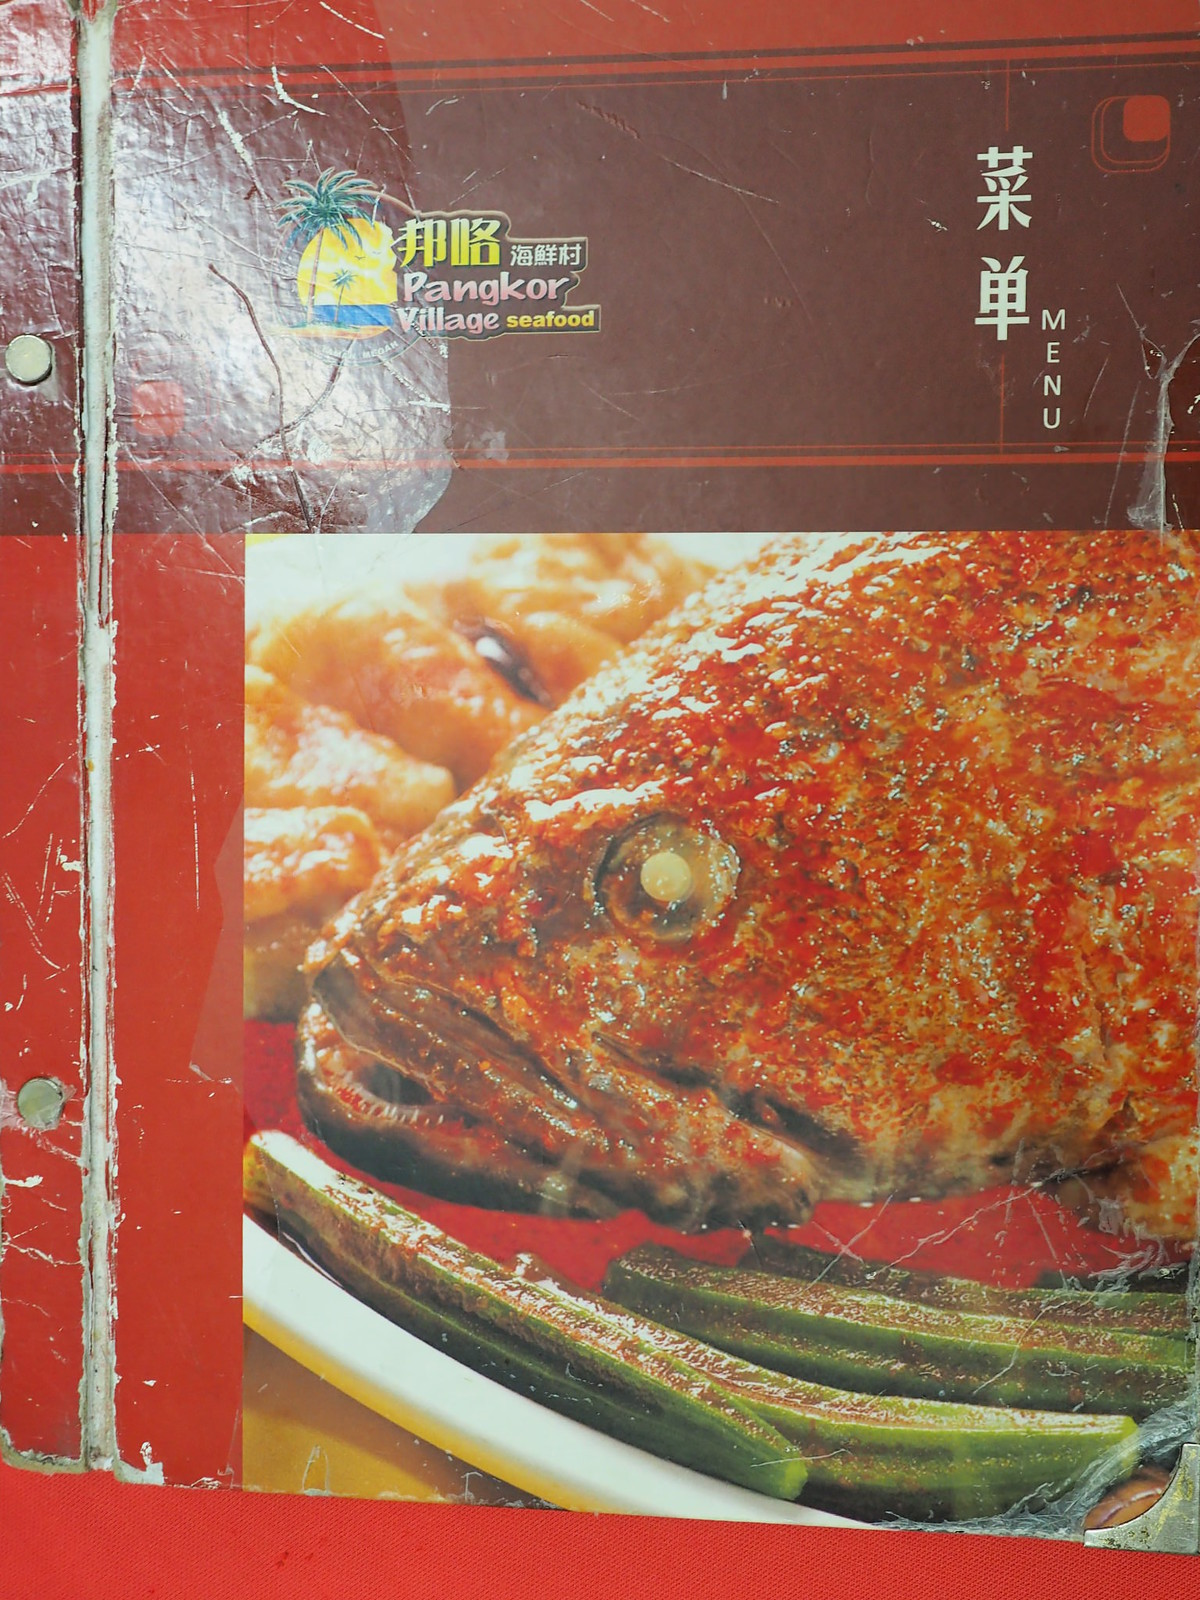 Menu of Pangkor Village Seafood, Taman Megah